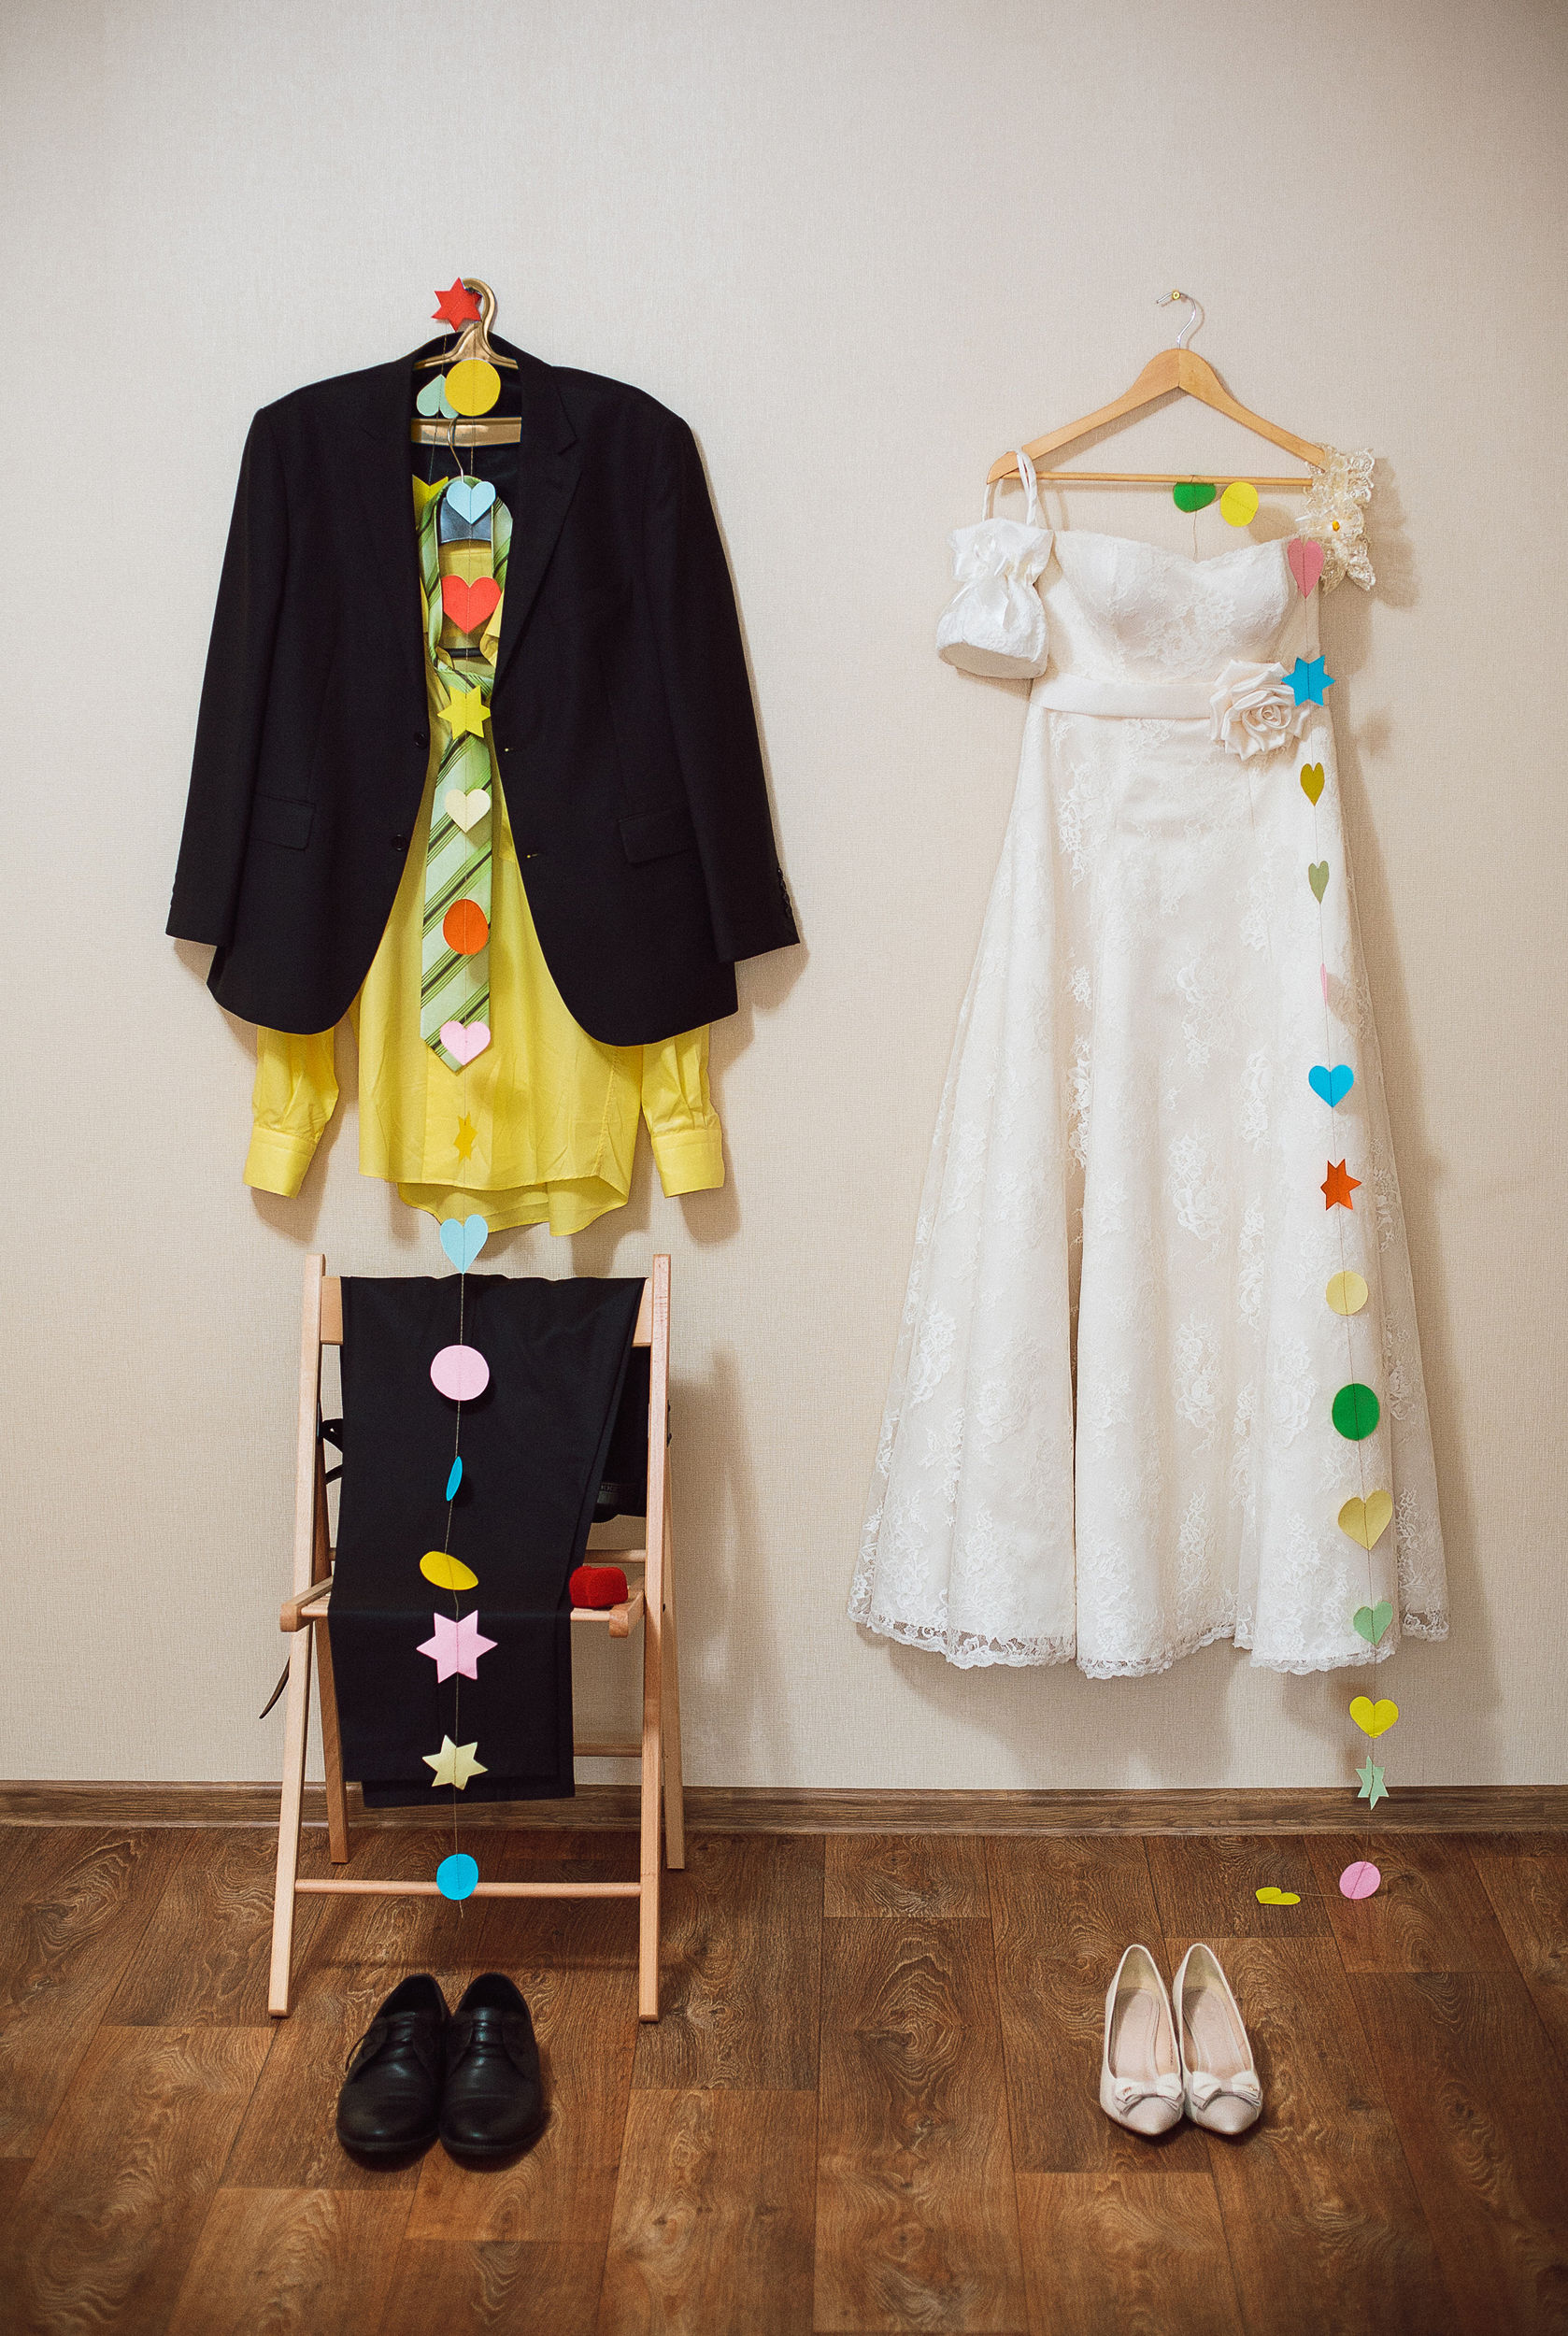 Groom and Bride outfits waiting to be worn